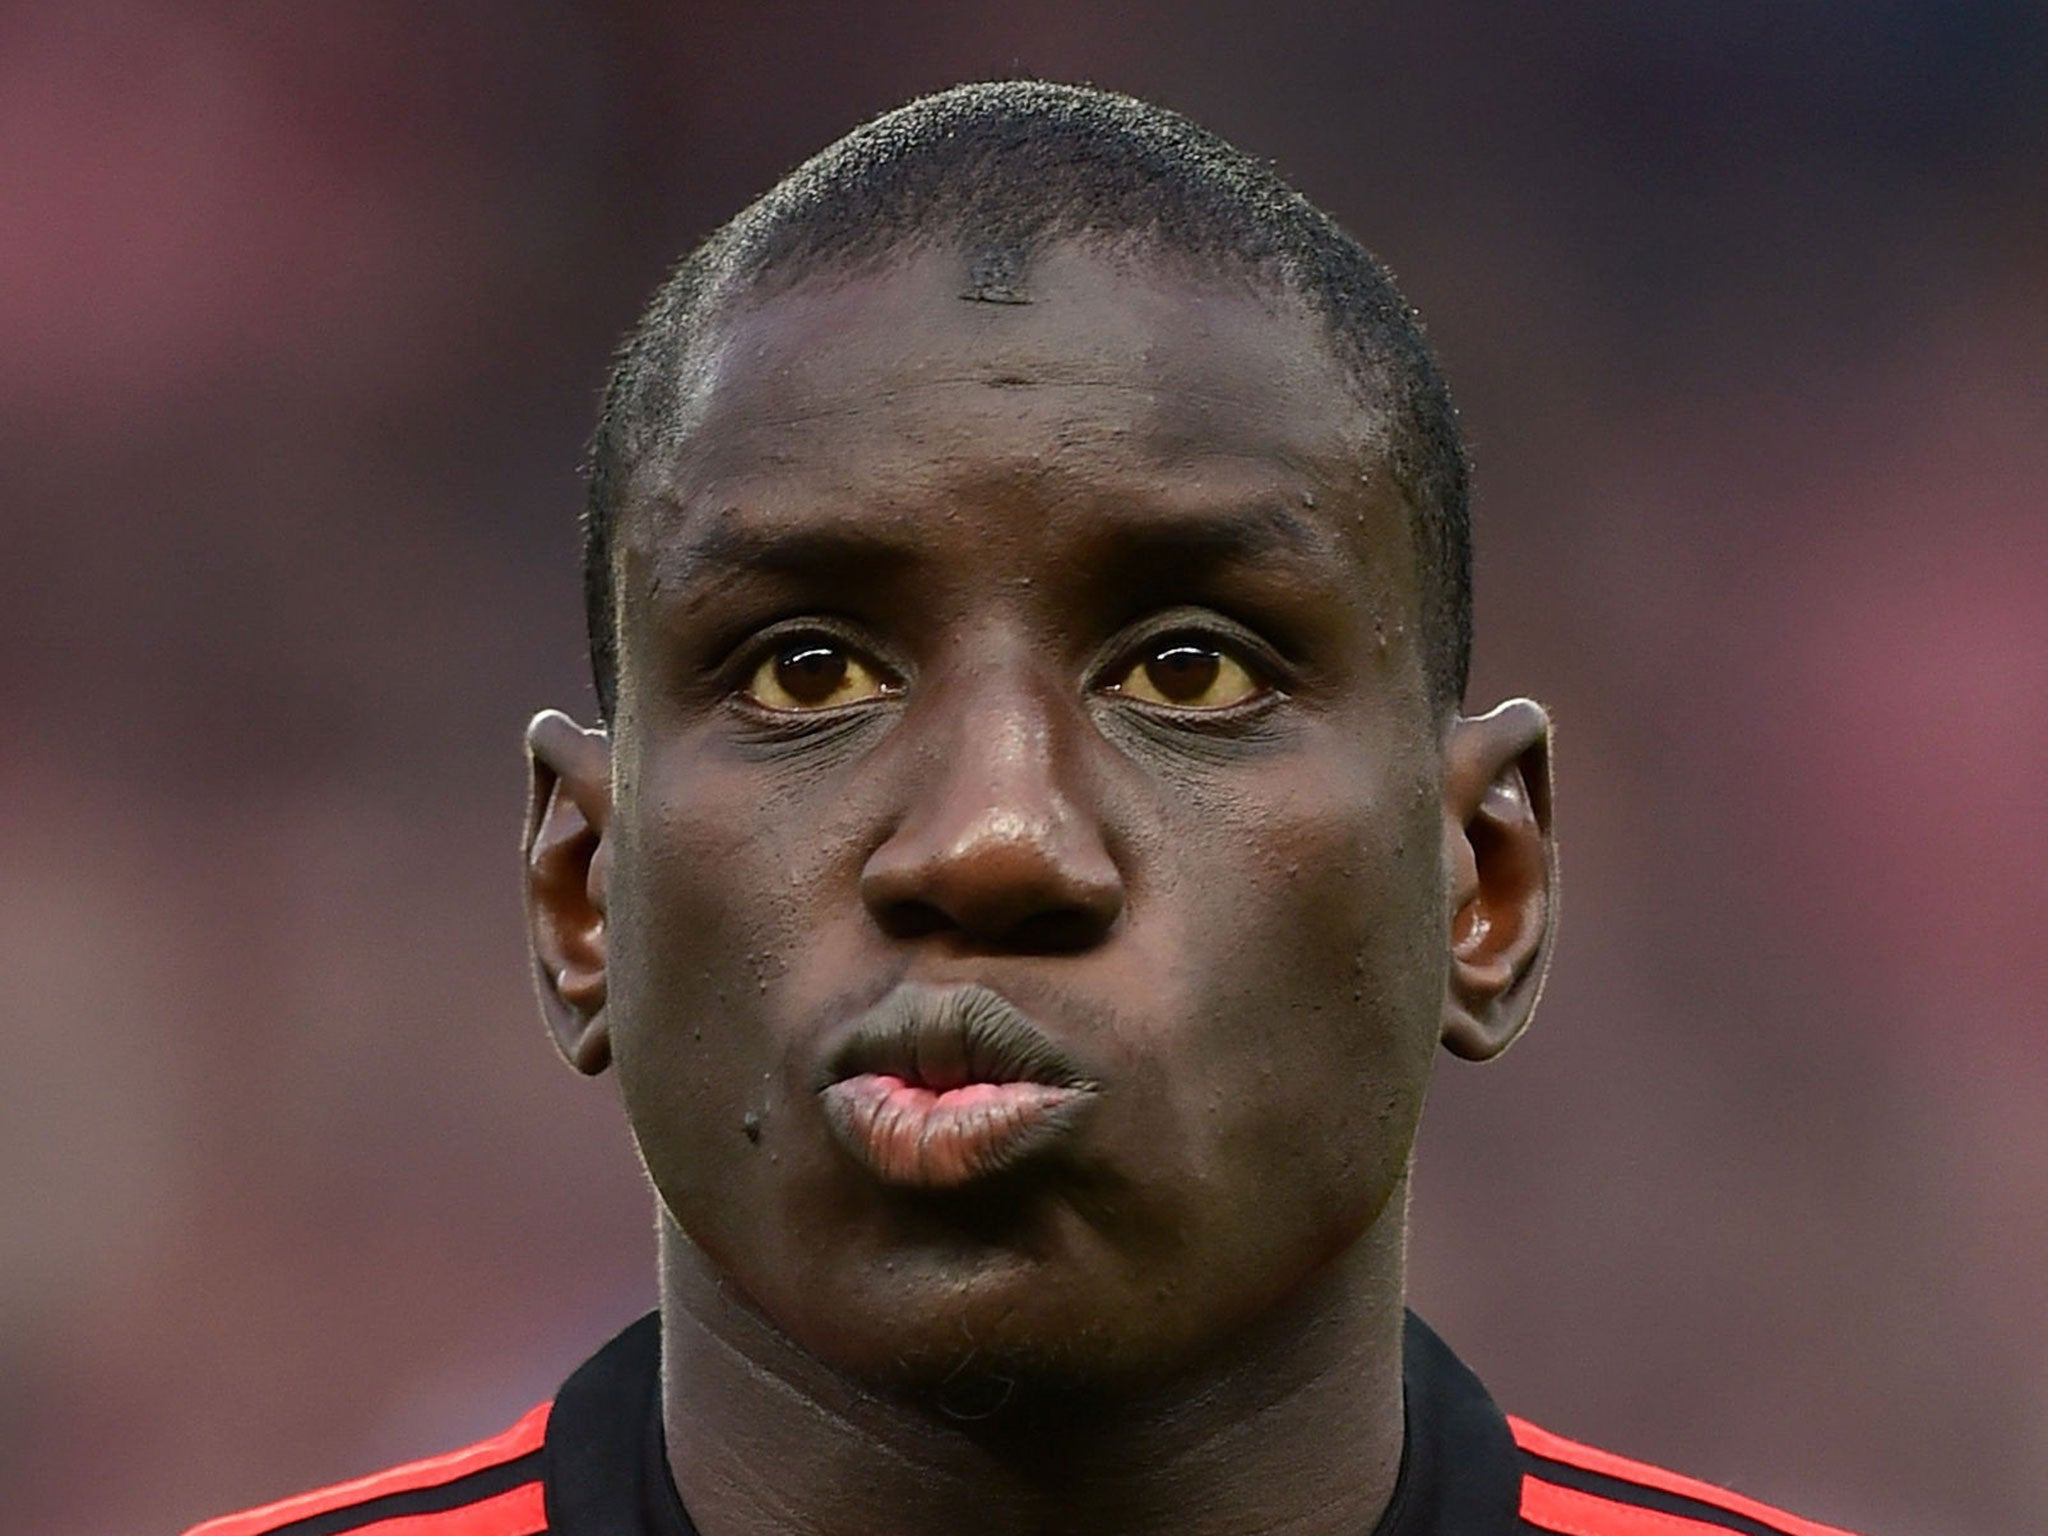 Demba Ba earned a  million dollar salary - leaving the net worth at 8 million in 2018